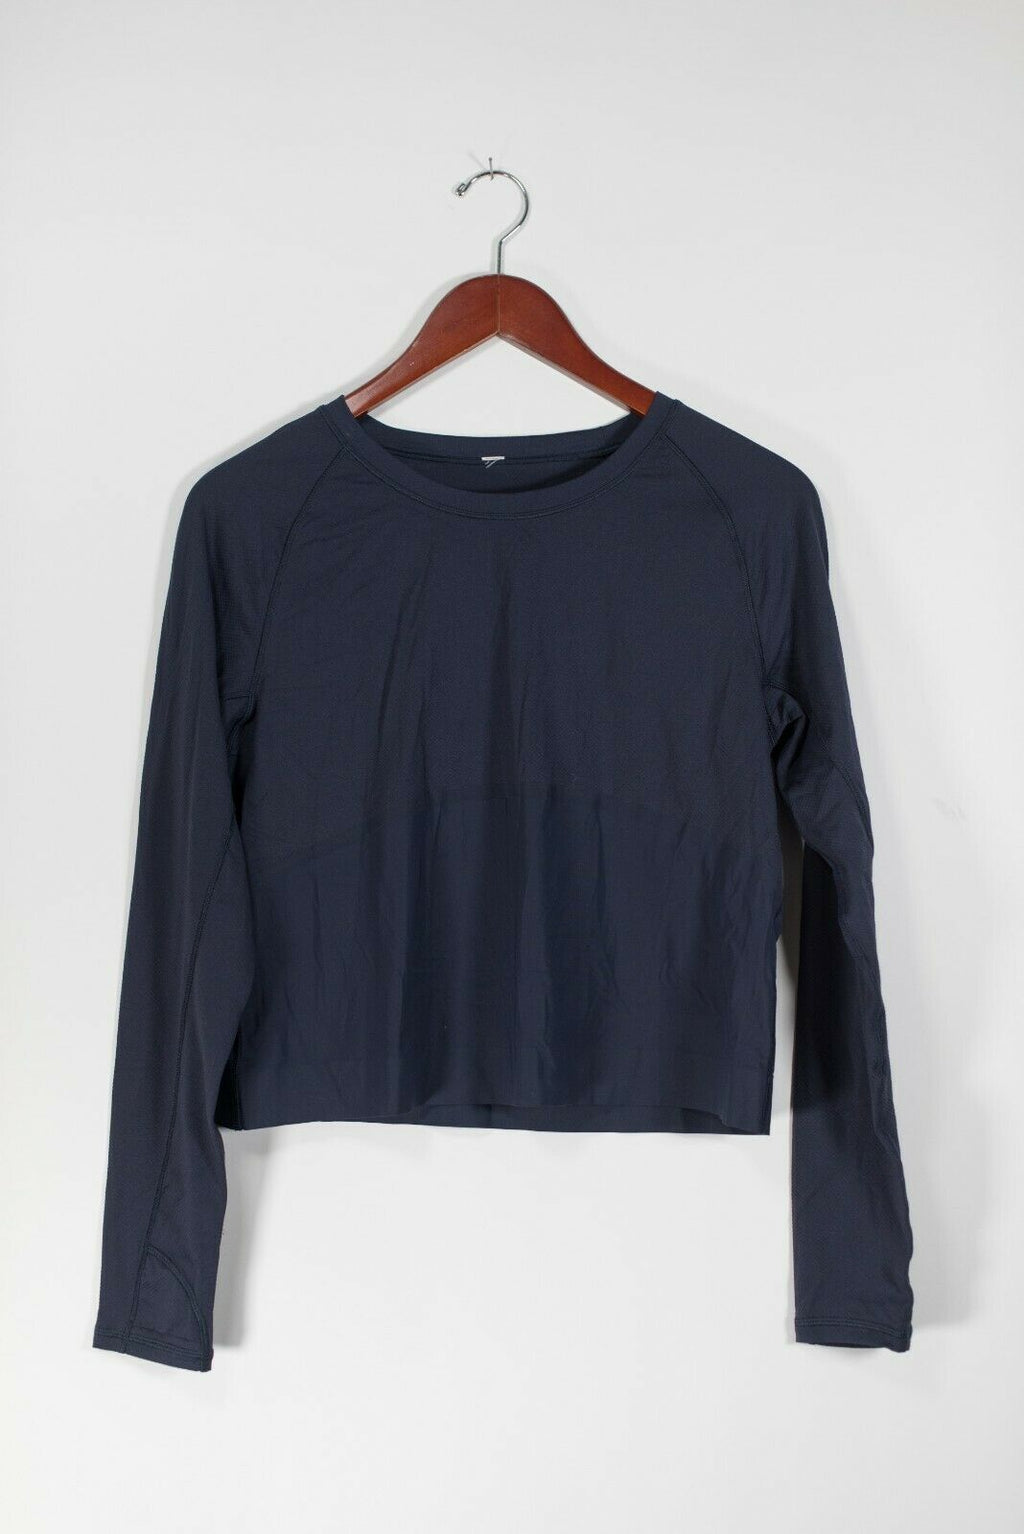 Lululemon Women's S/M Indio Blue Pullover Shirt Long Sleeve Cropped Yoga Top